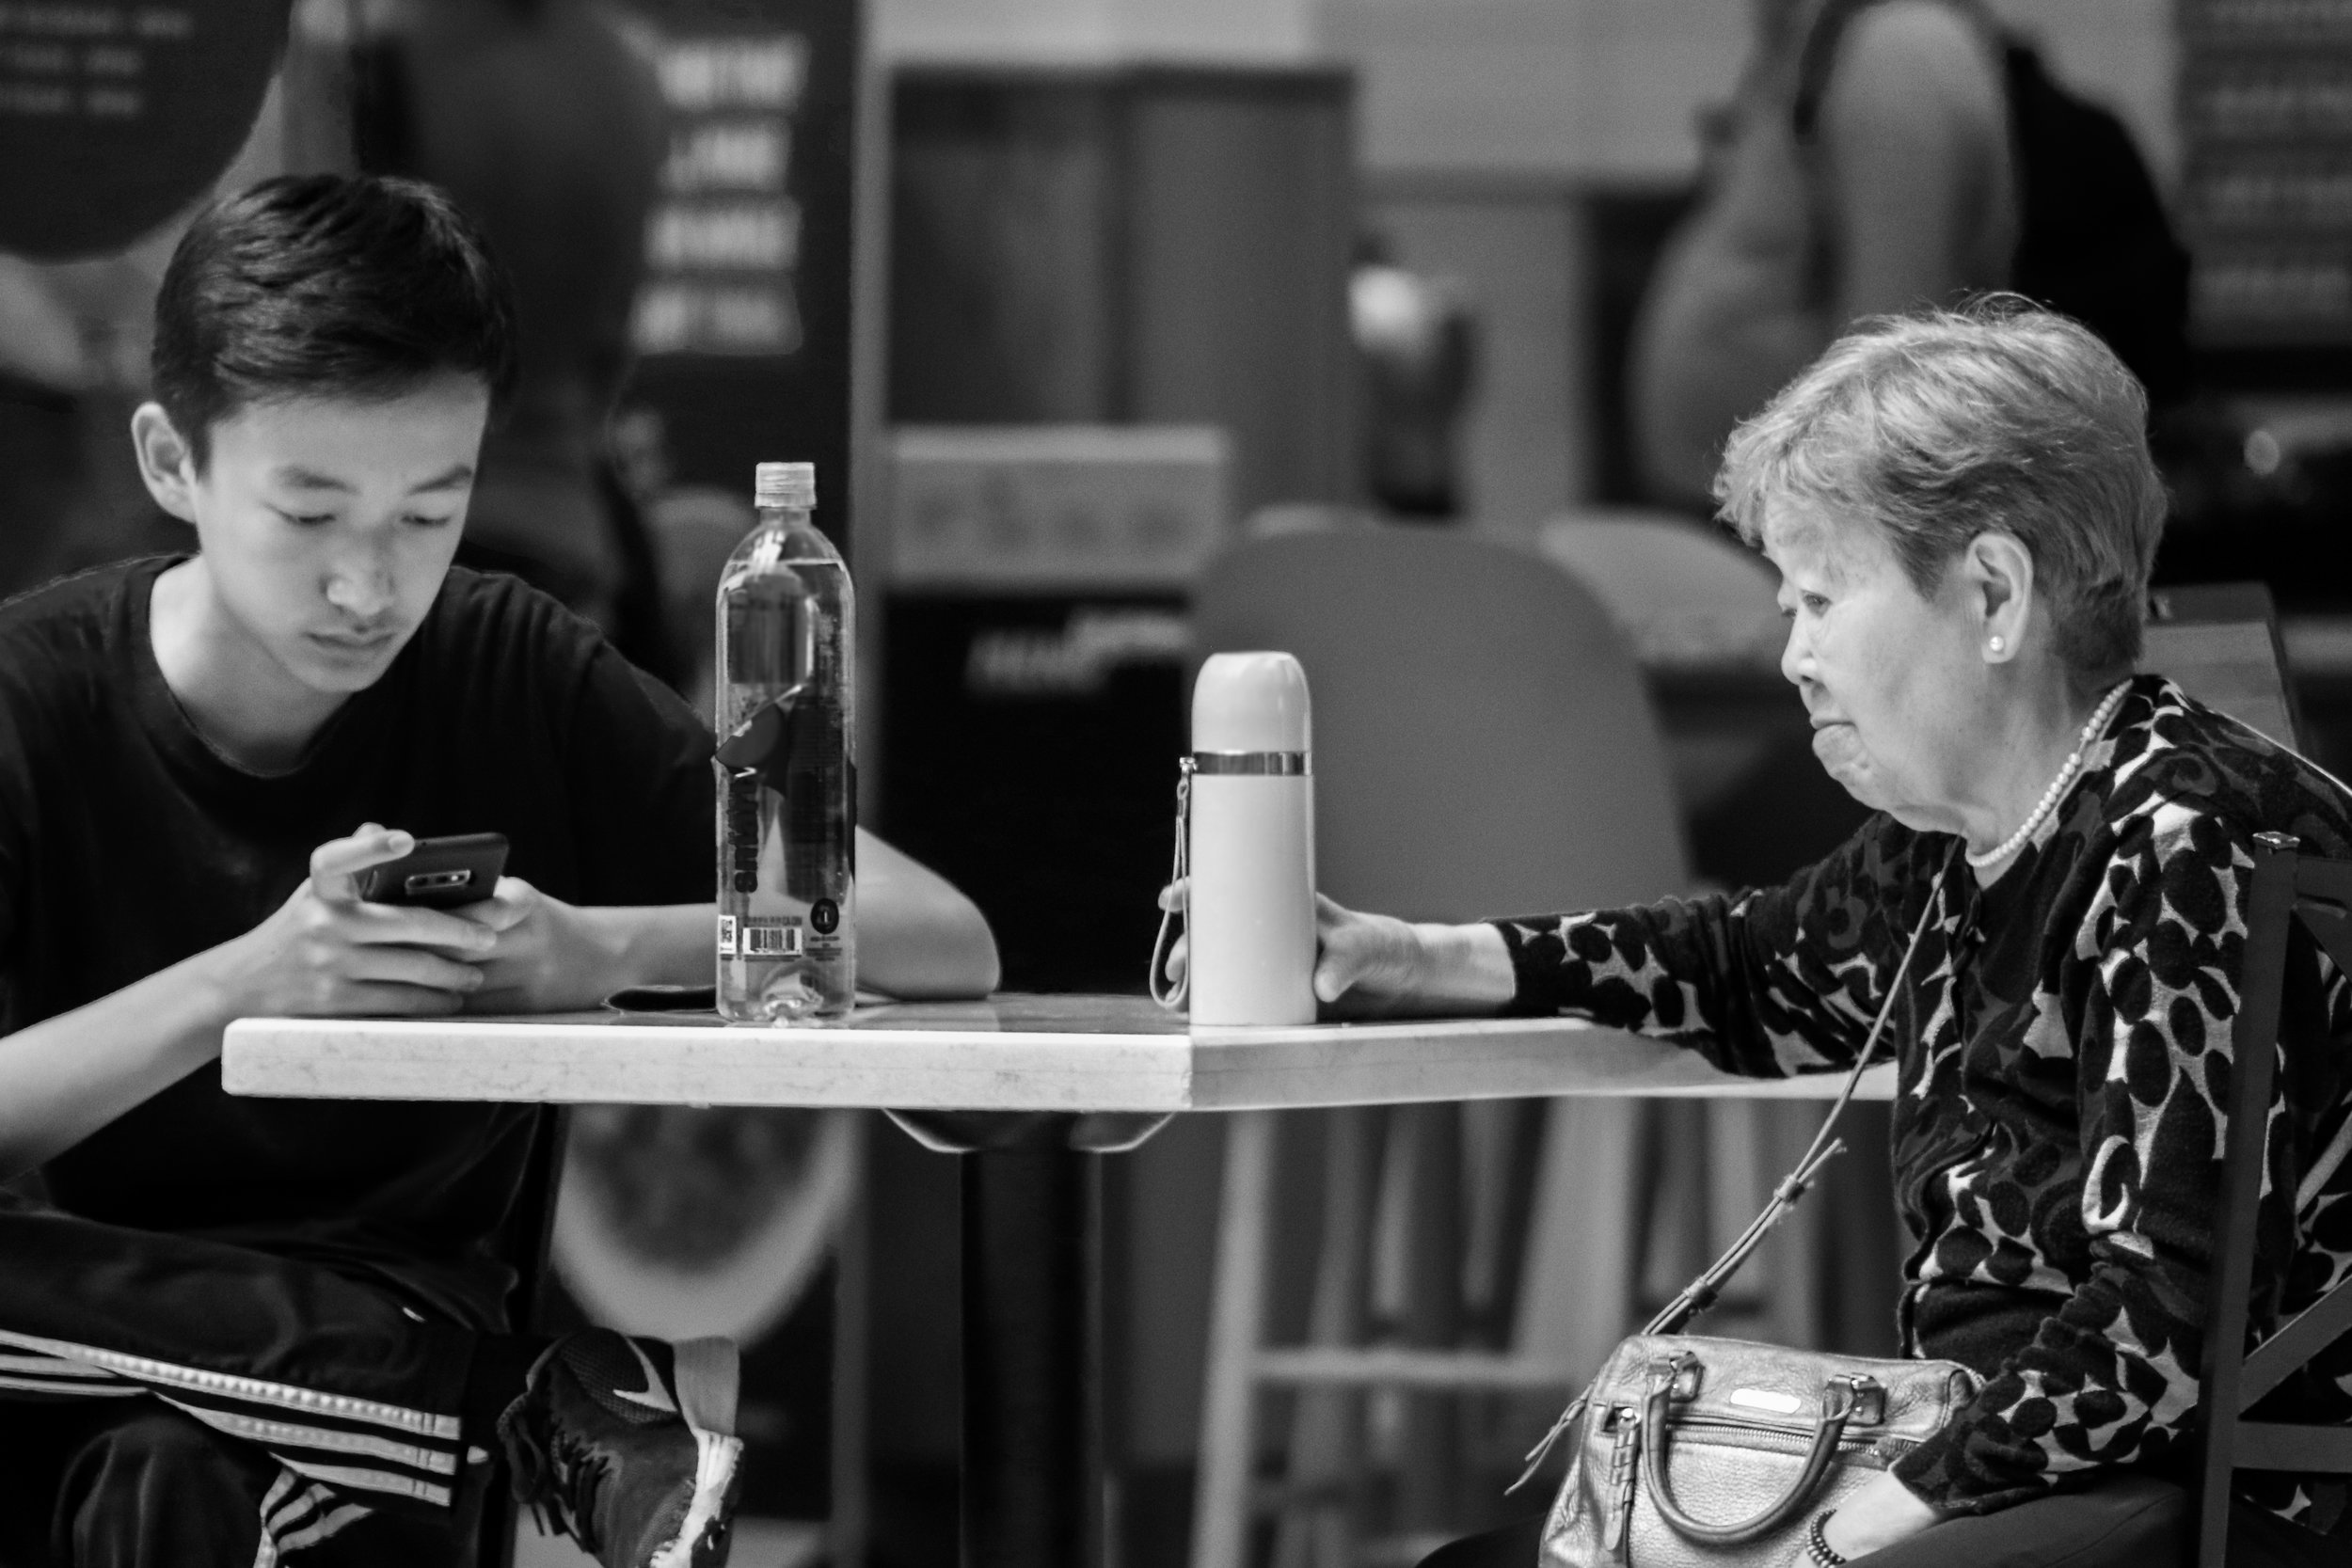 A grandmother and grandson sit together at the station's coffee shop. The grandson's eyes remain fixated on his phone while his grandmother gazes down at the floor, clutching onto her light pink water bottle.